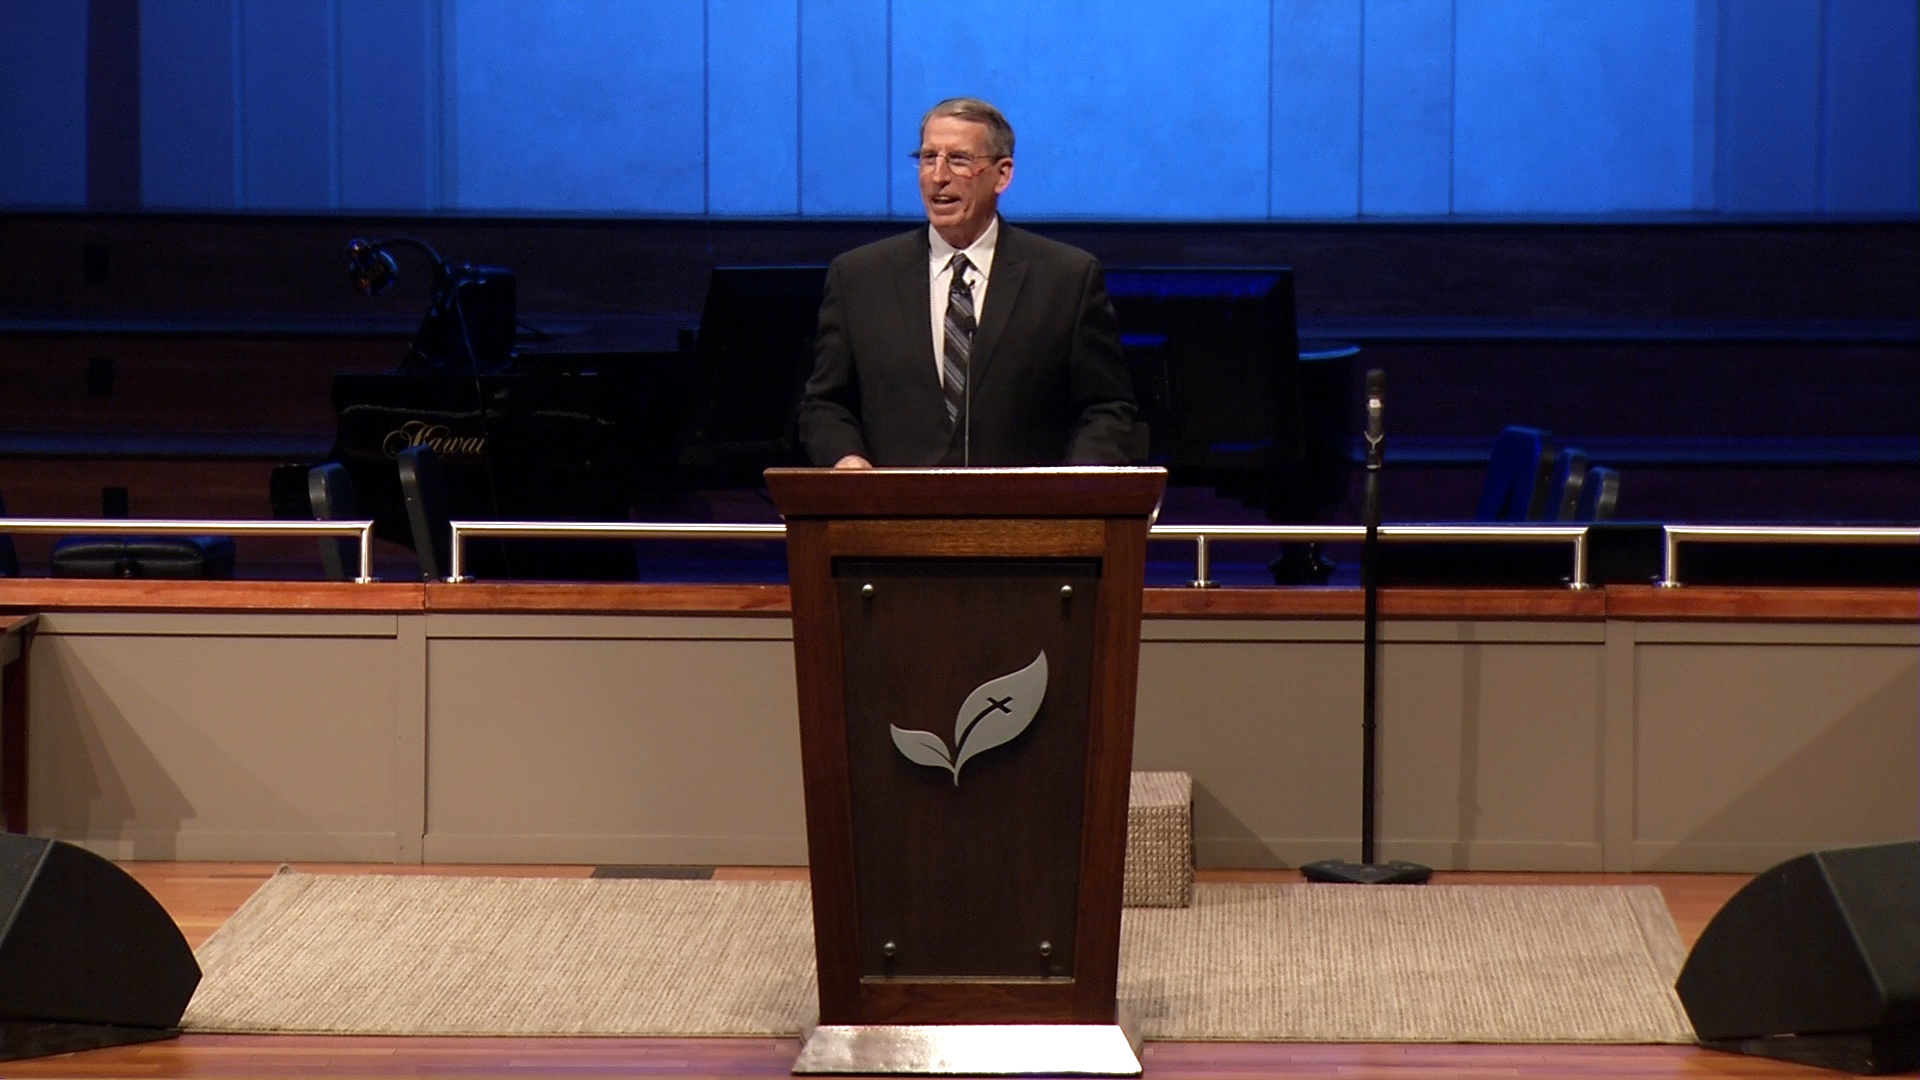 Dr. John Goetsch: Unction in the Church